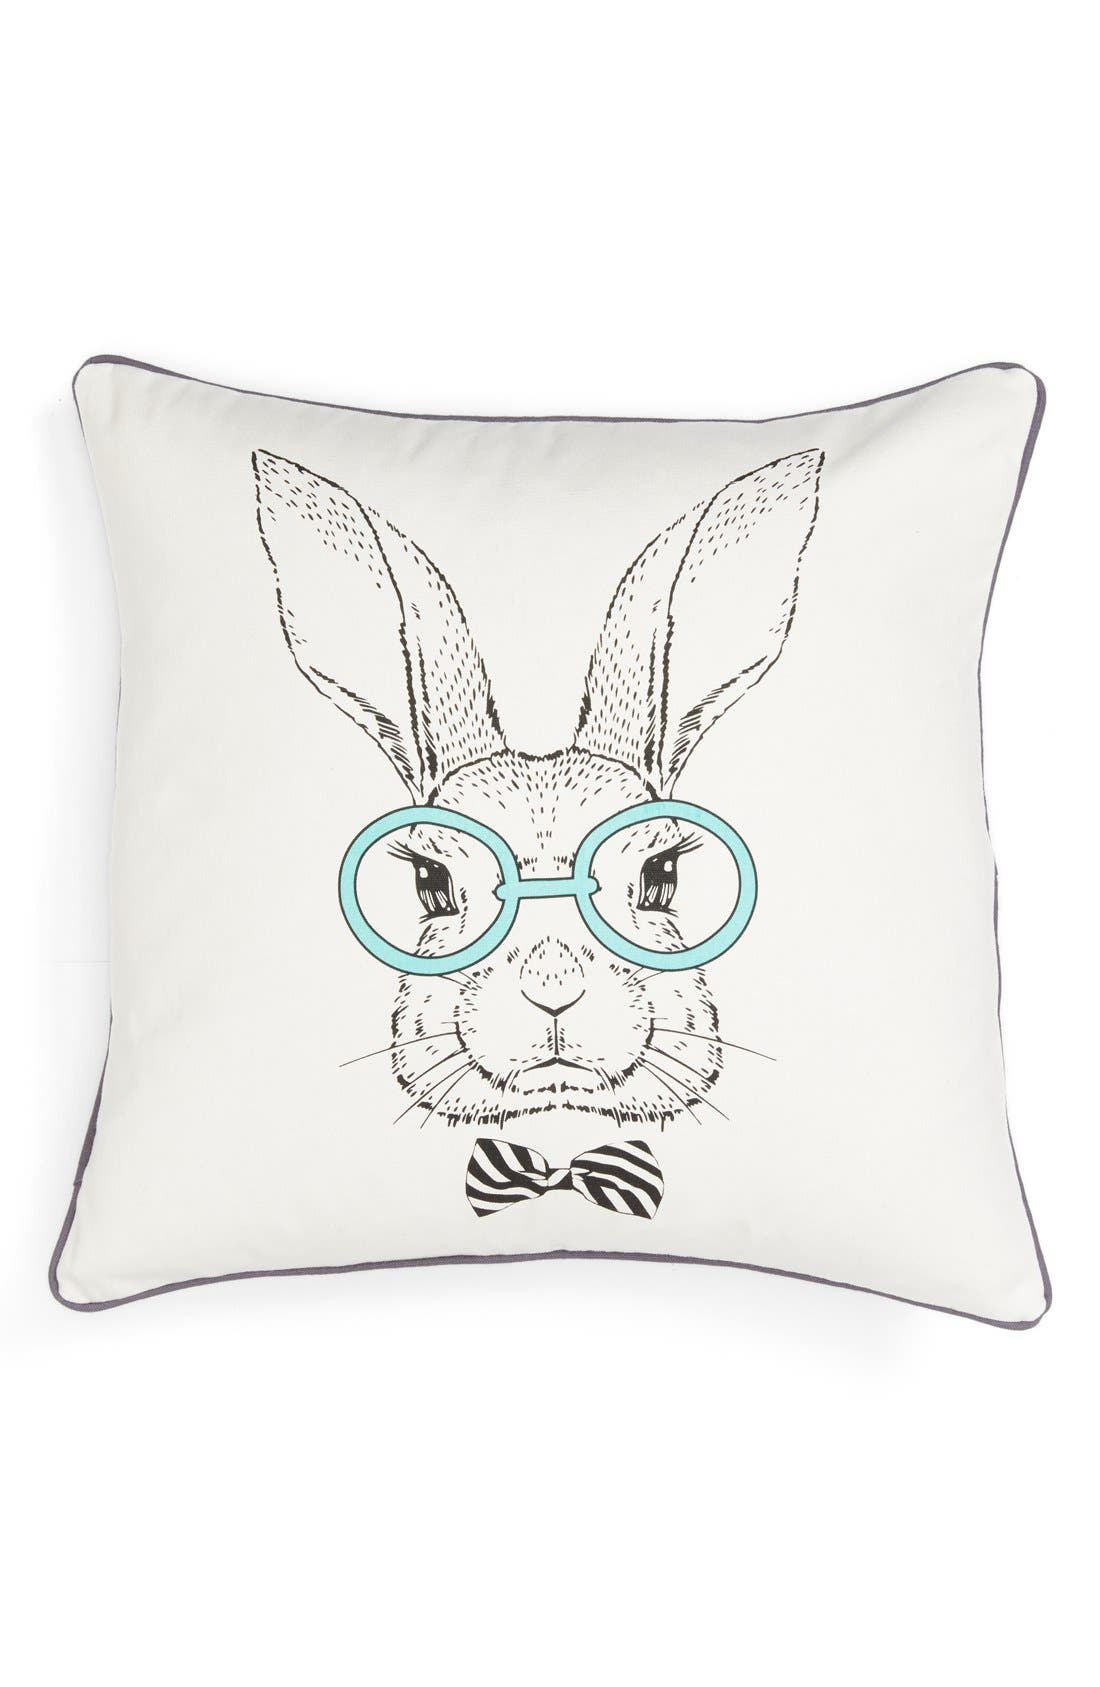 Alternate Image 1 Selected - Levtex 'Rabbit with Specs' Pillow